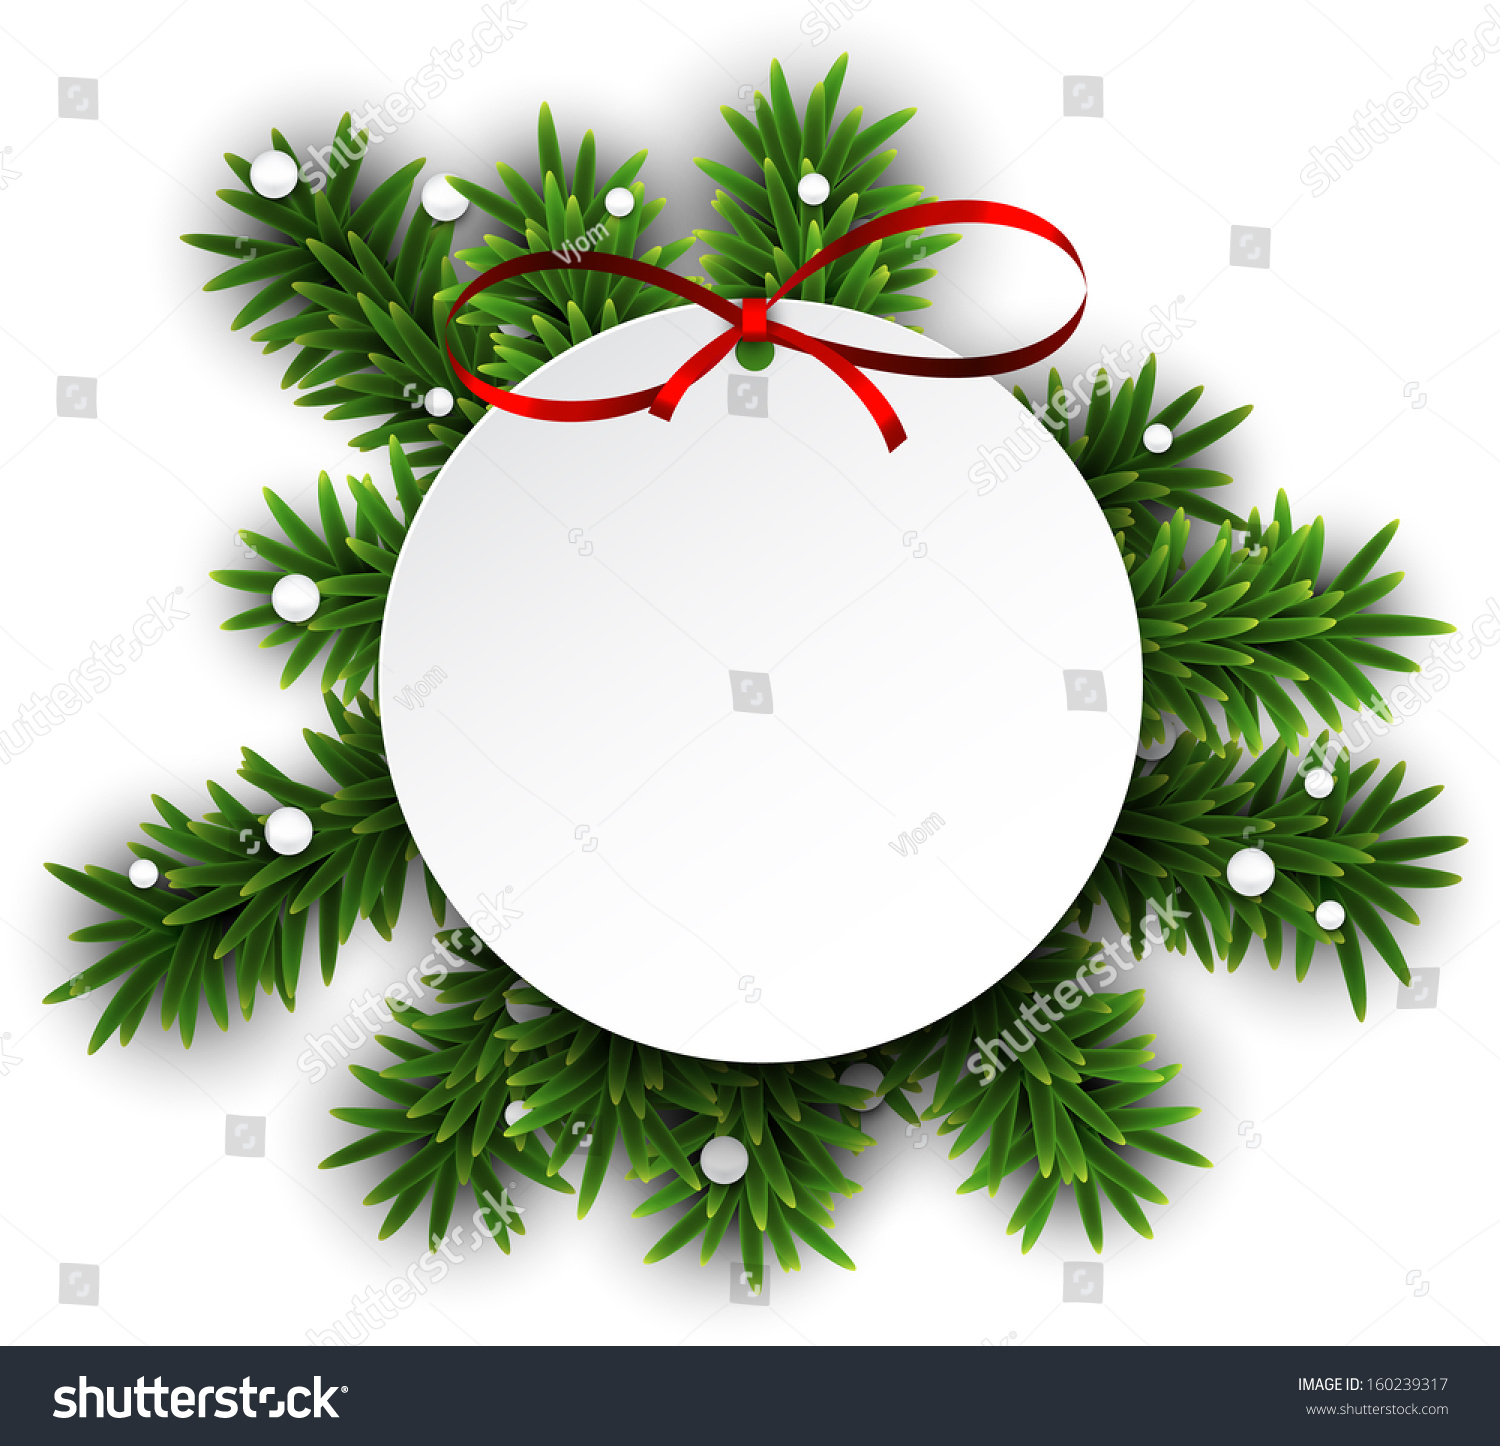 christmas tree branch vector - photo #34